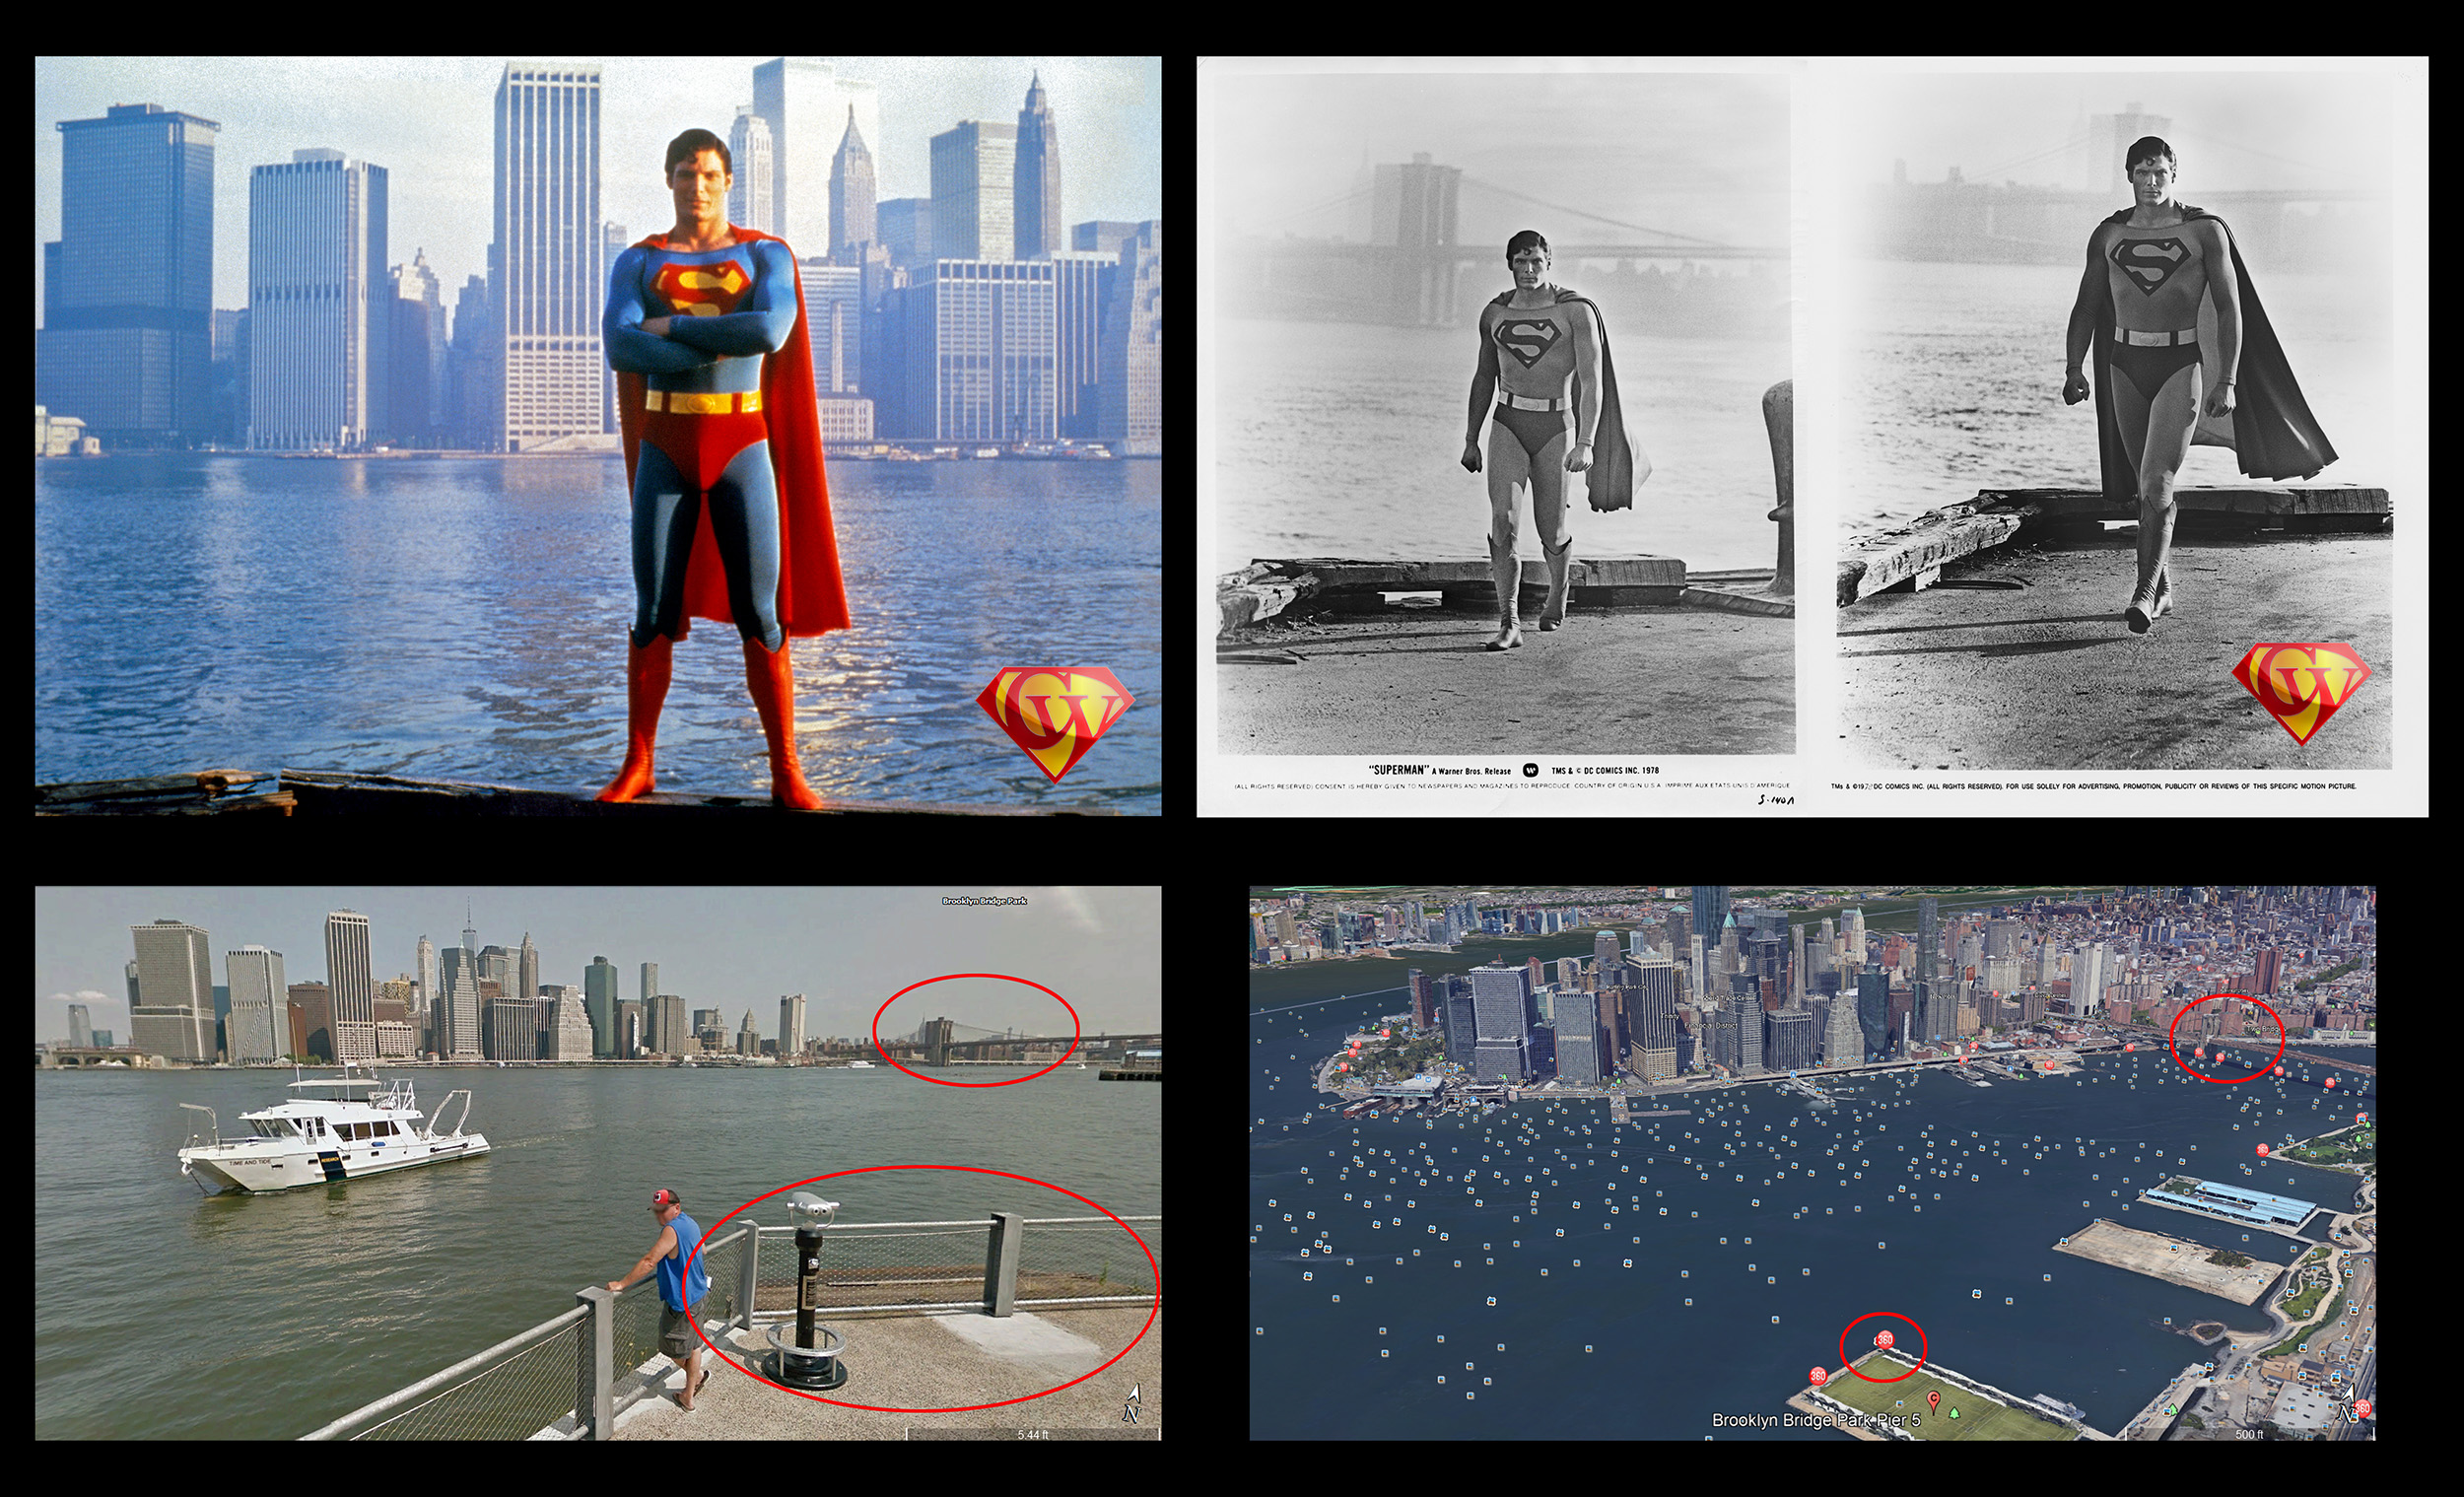 CW-STM-Brookslyn-Bridge-Park-pier-with-Superman